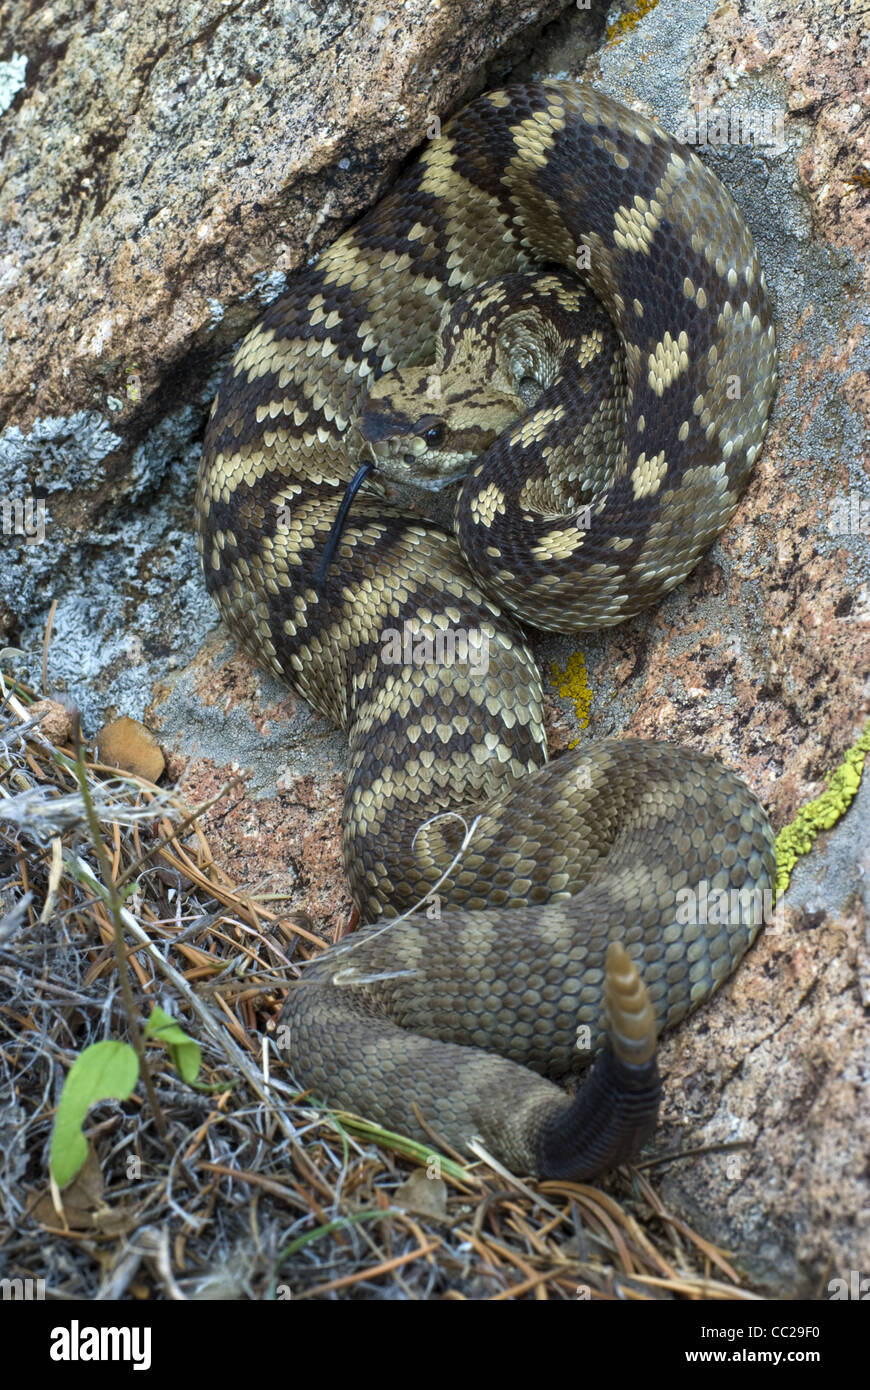 New mexico socorro county magdalena - Northern Blacktailed Rattlesnake Crotalus Molussus Molussus Magdalena Mountains Socorro County New Mexico Usa